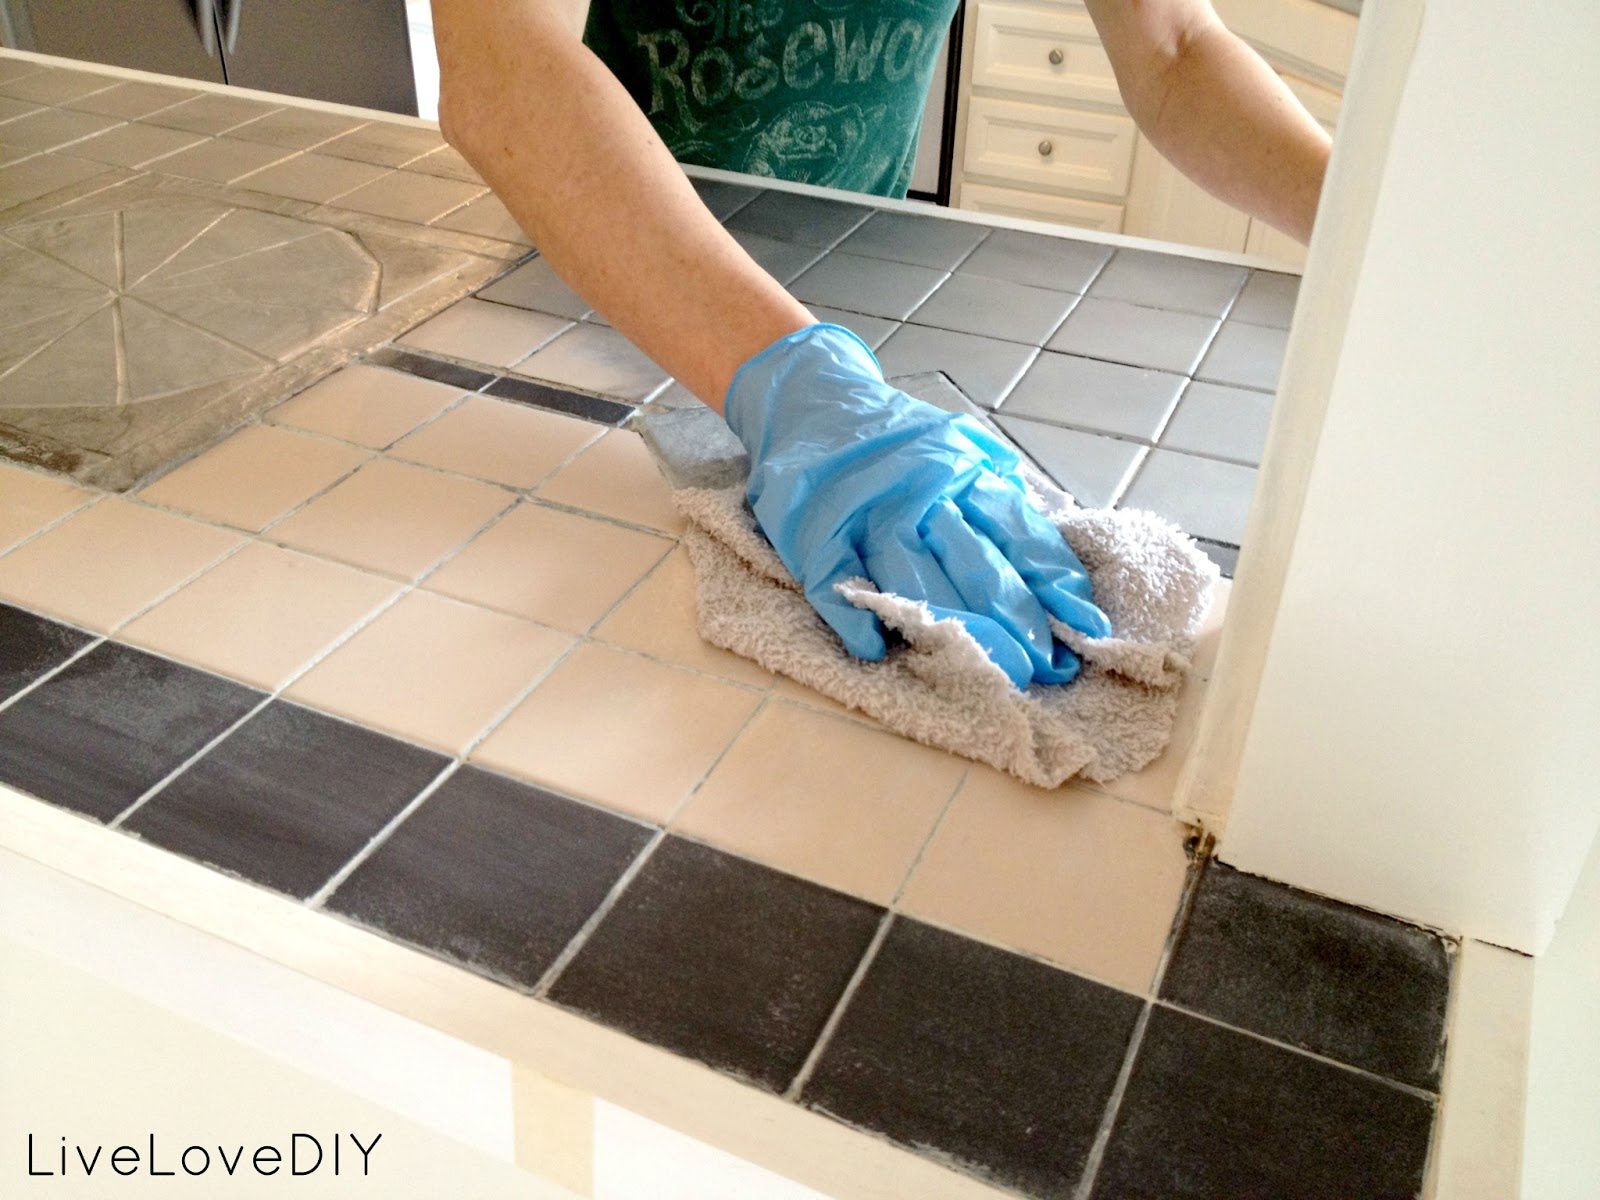 Kitchen Tiles Painted Over livelovediy: how to paint tile countertops